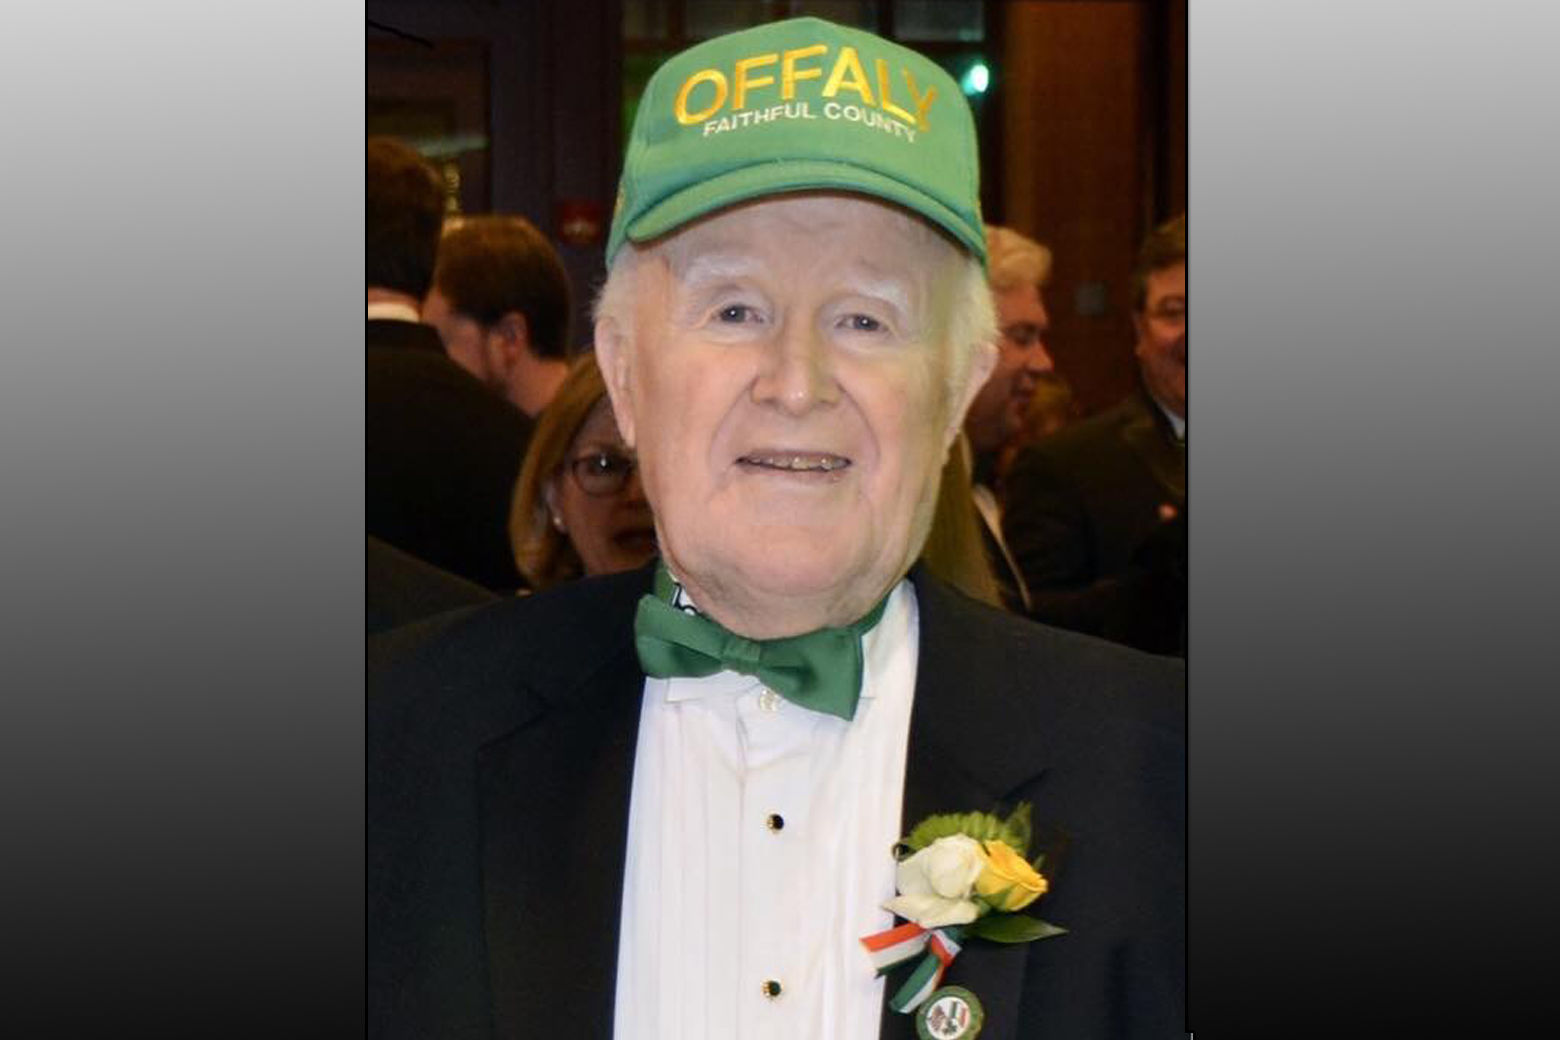 Just days after sharing Grand Marshal duties with his wife in the city's St. Patrick's Day parade he founded 37 years ago, Pat Troy has died at age 76. (Photo credit: Kimberly Bryce)